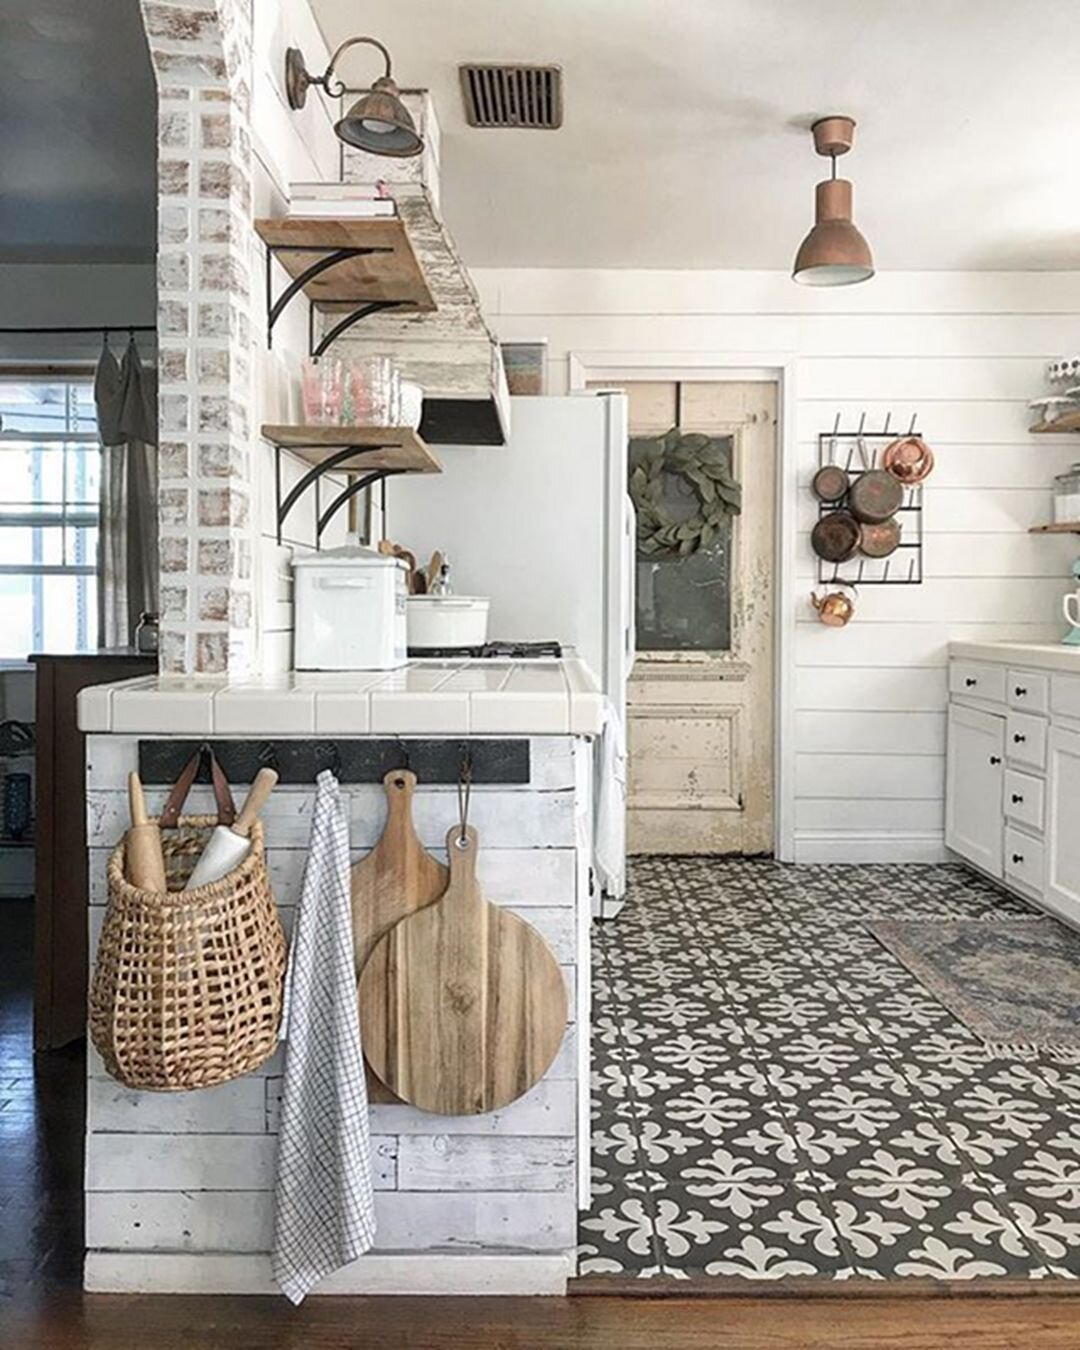 Farmhouse-Kitchen-Design-And-Deporting-Ideas-602.jpg